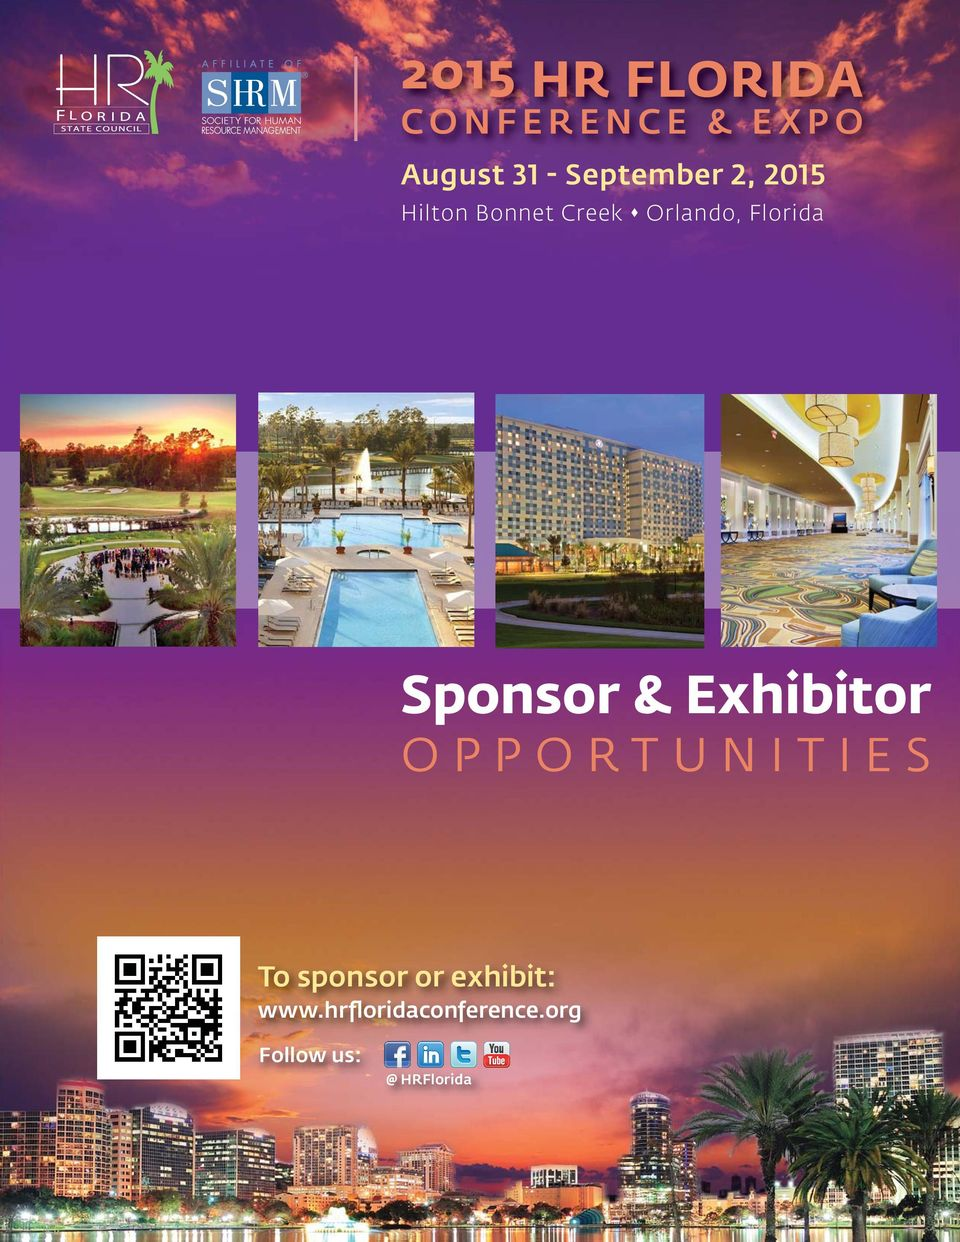 Florida Sponsor & Exhibitor OPPORTUNITIES To